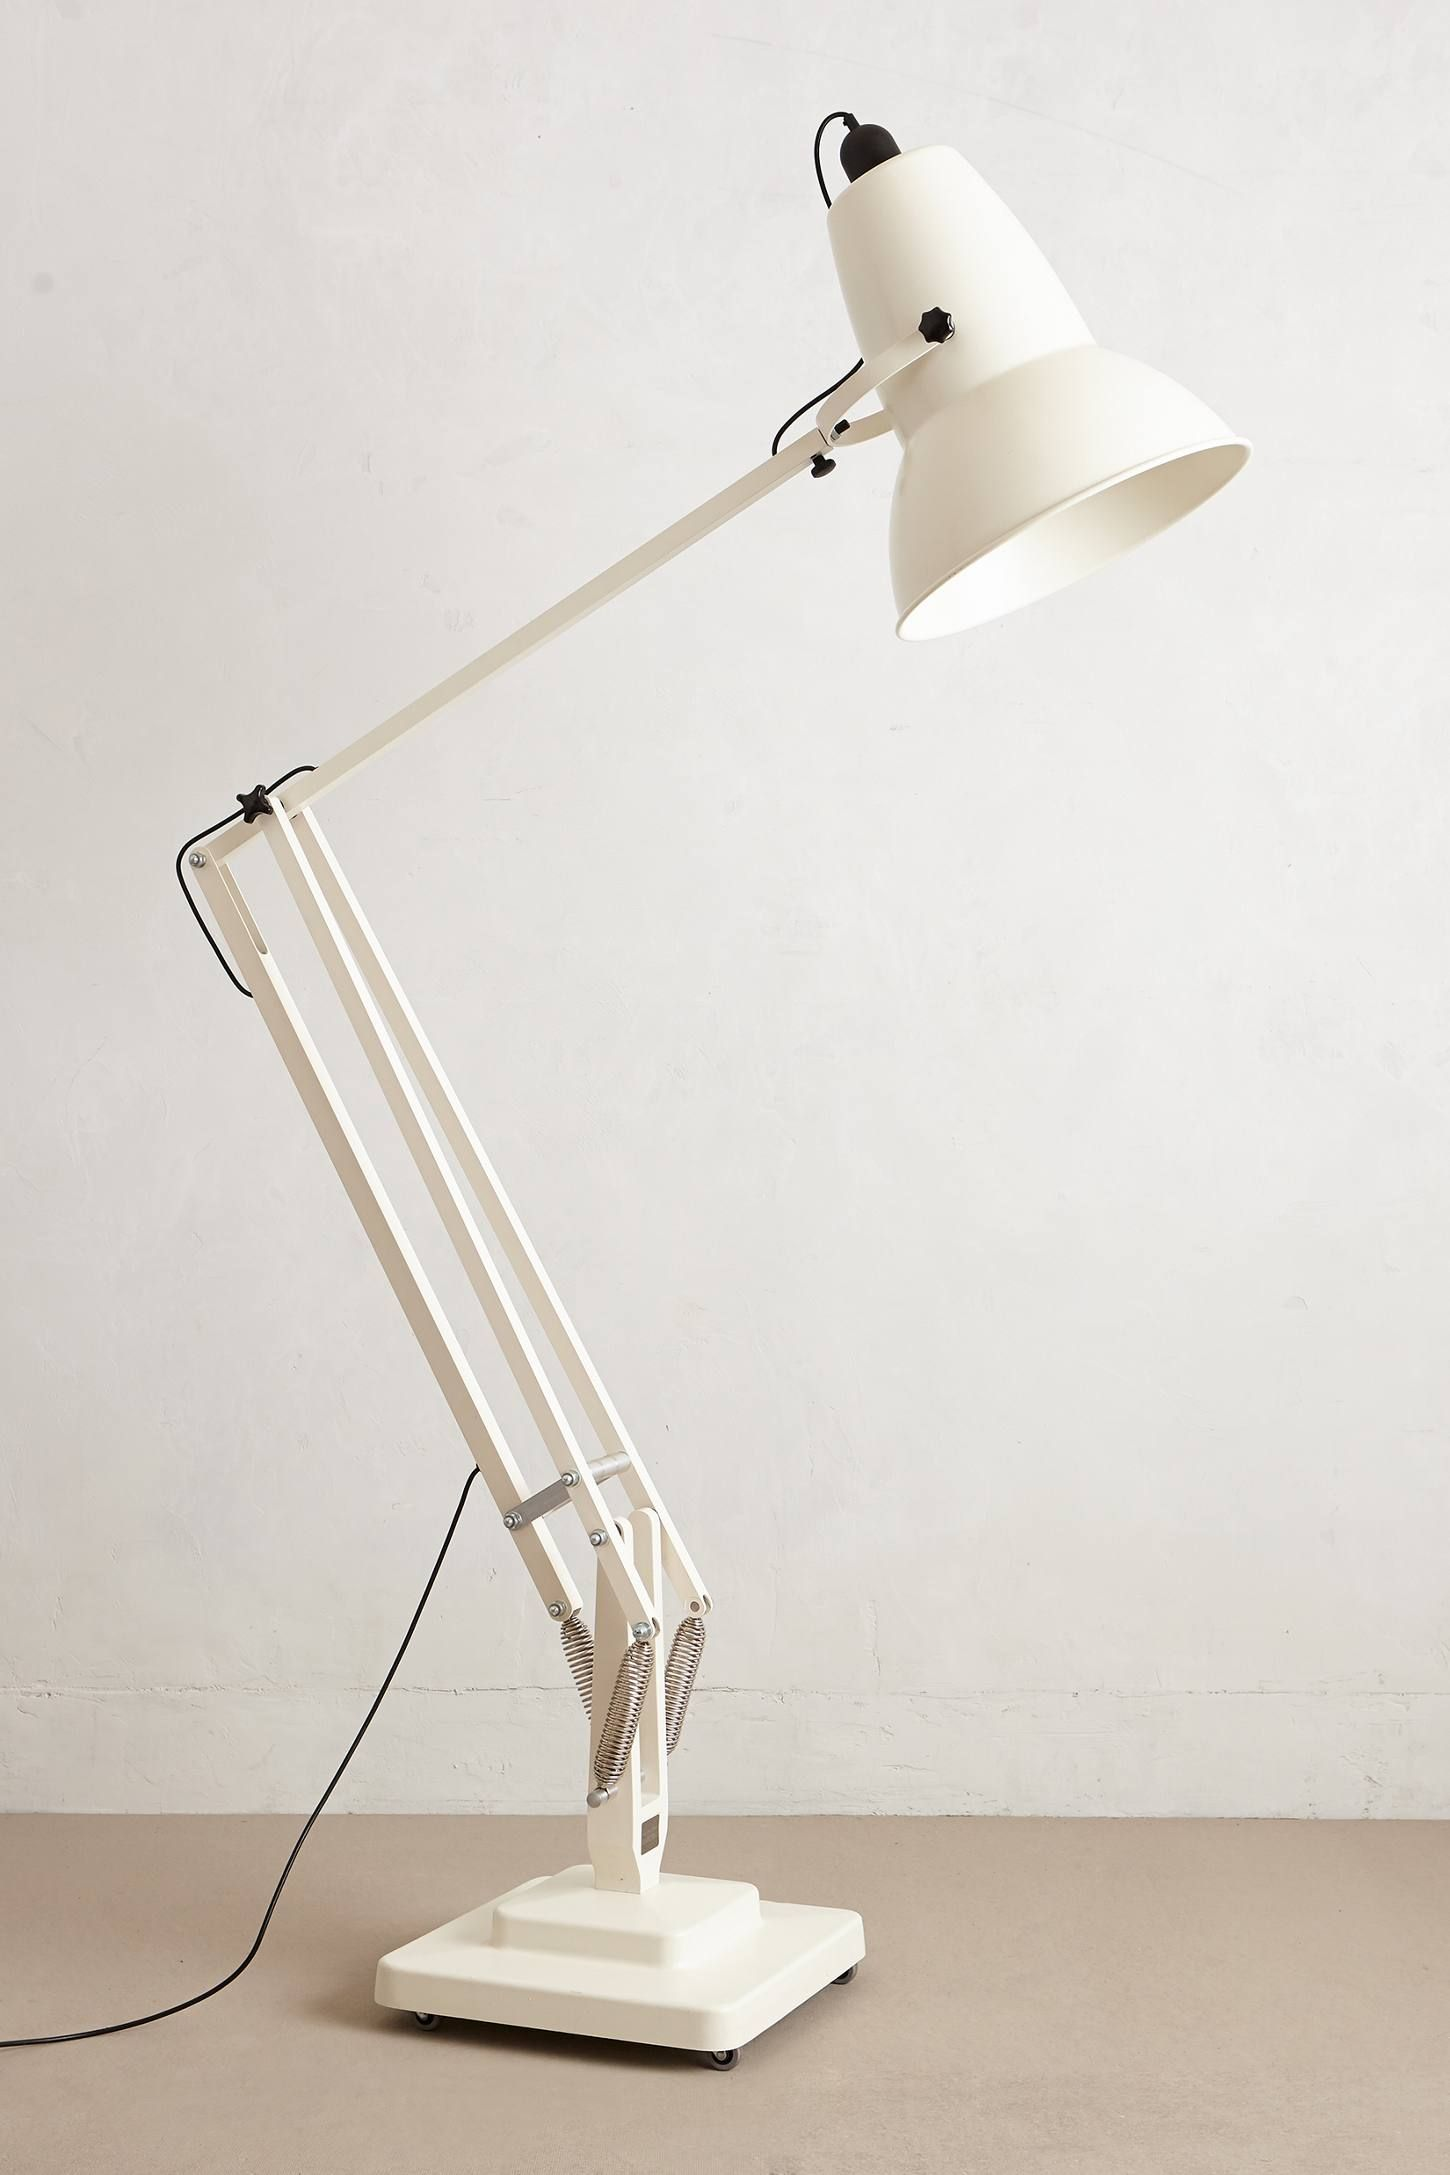 Giant Angle Poise Floor Lamp By Anglepoise Aluminum Stainless Steel 100 Watt Max 118 Cord 105 H 45 W Handmade In Uk Lamparas Proyectos